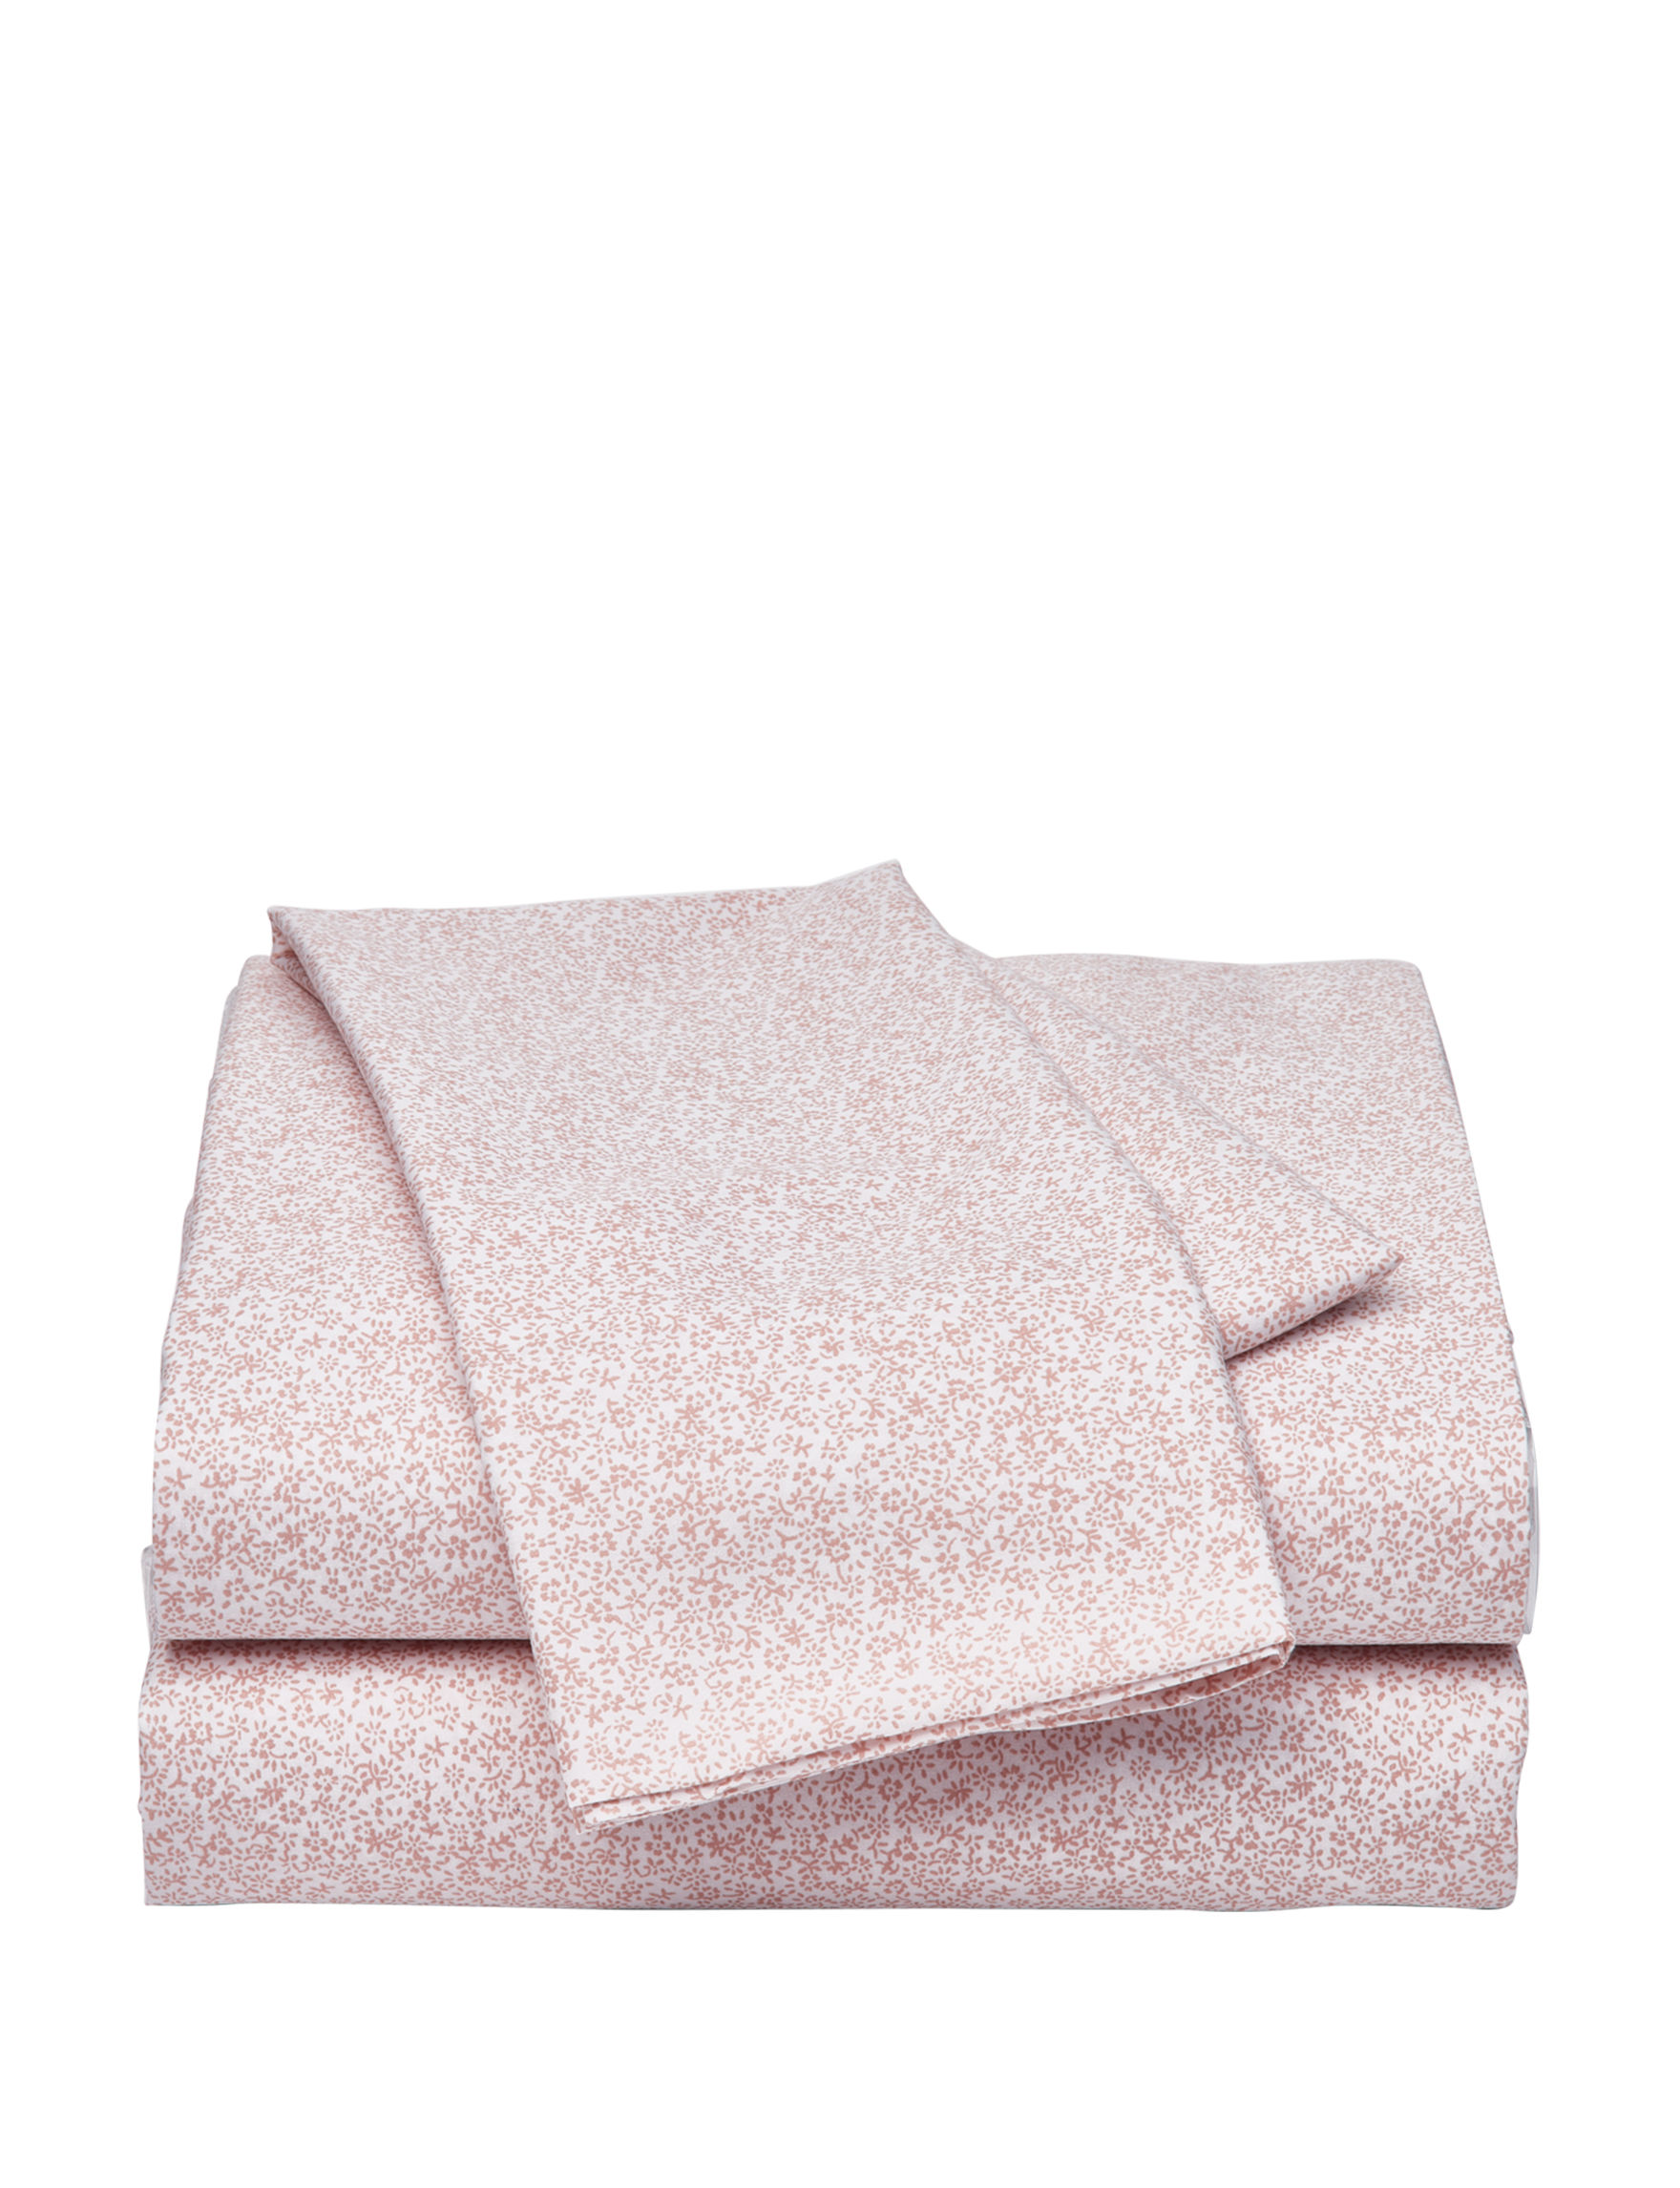 Great Hotels Collection Pink Floral Sheets